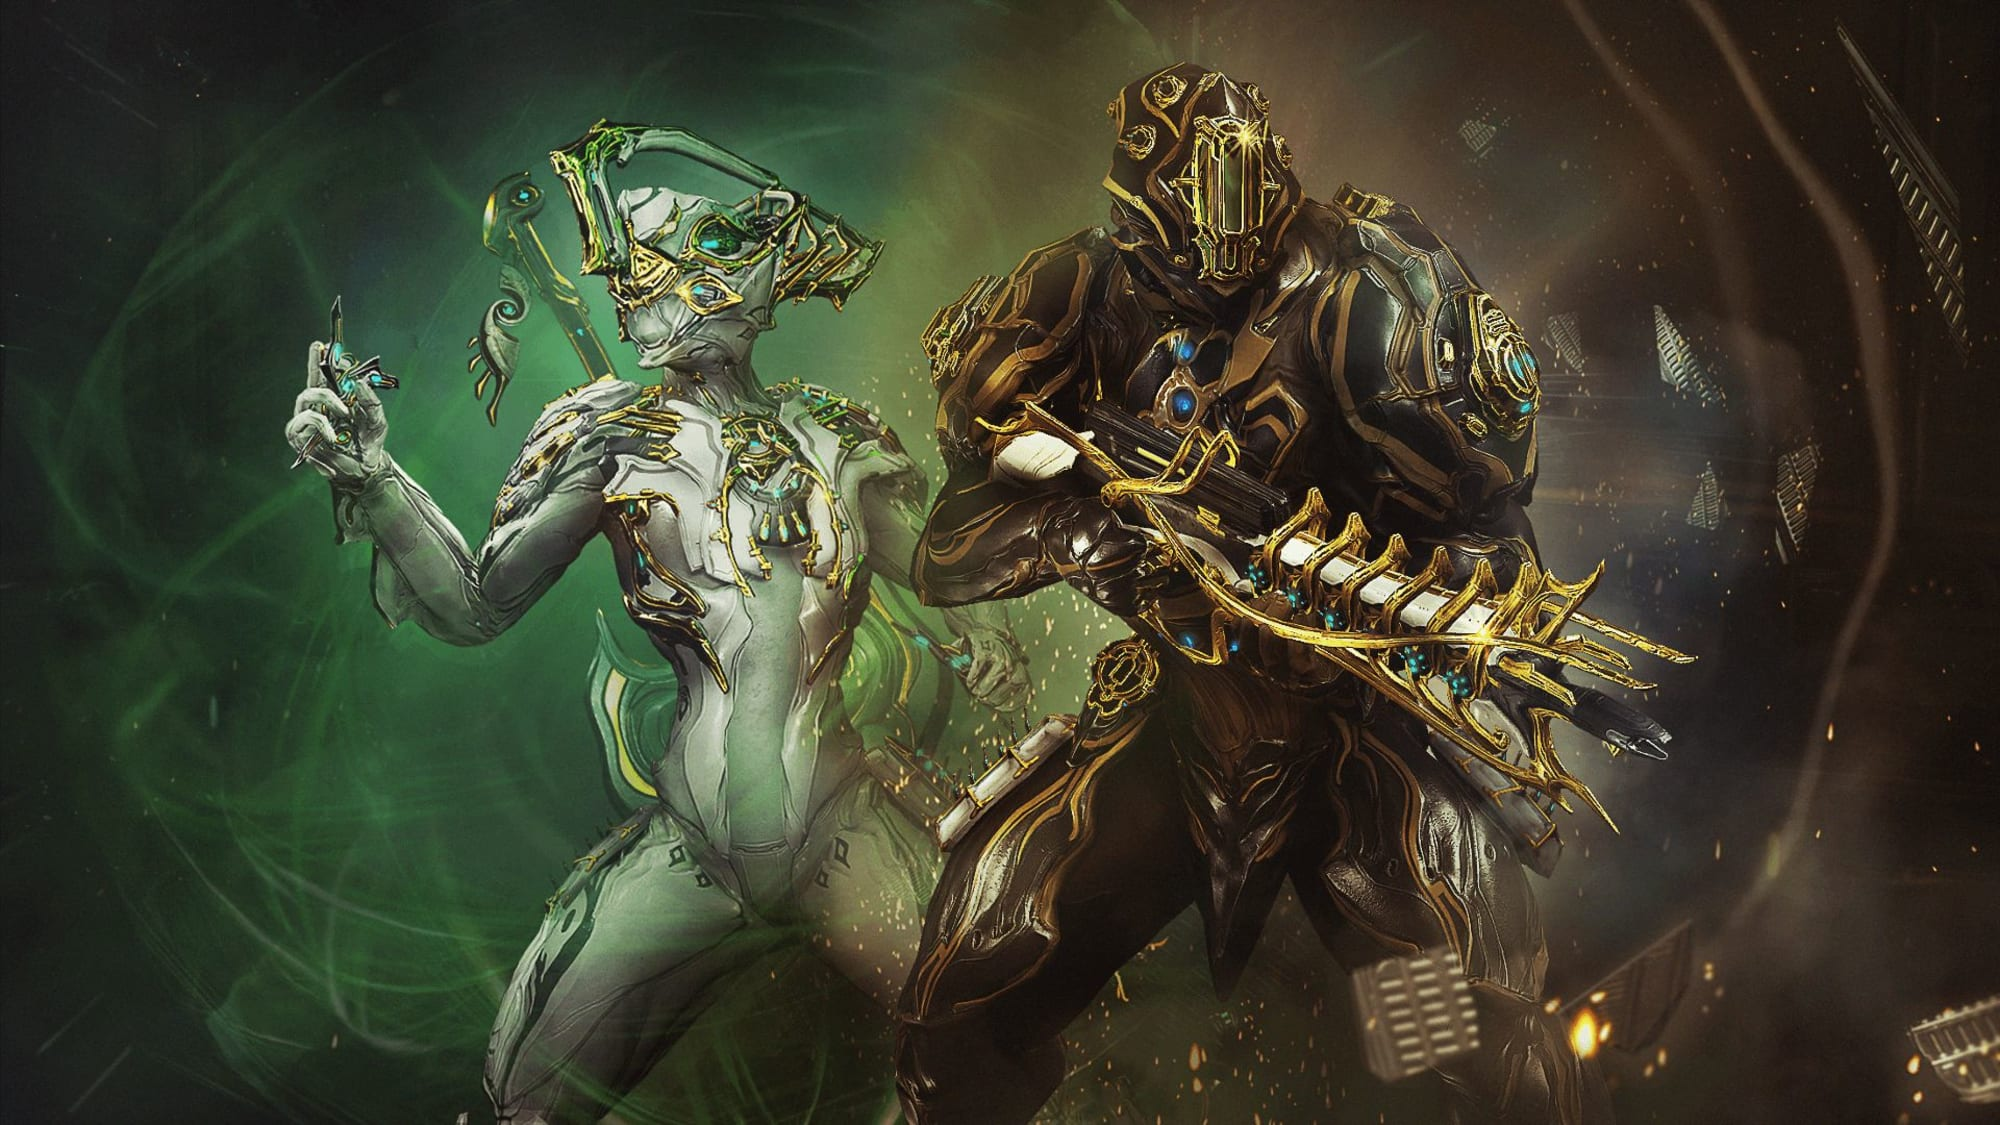 Warframe: How to farm for and build Nyx and Rhino Prime